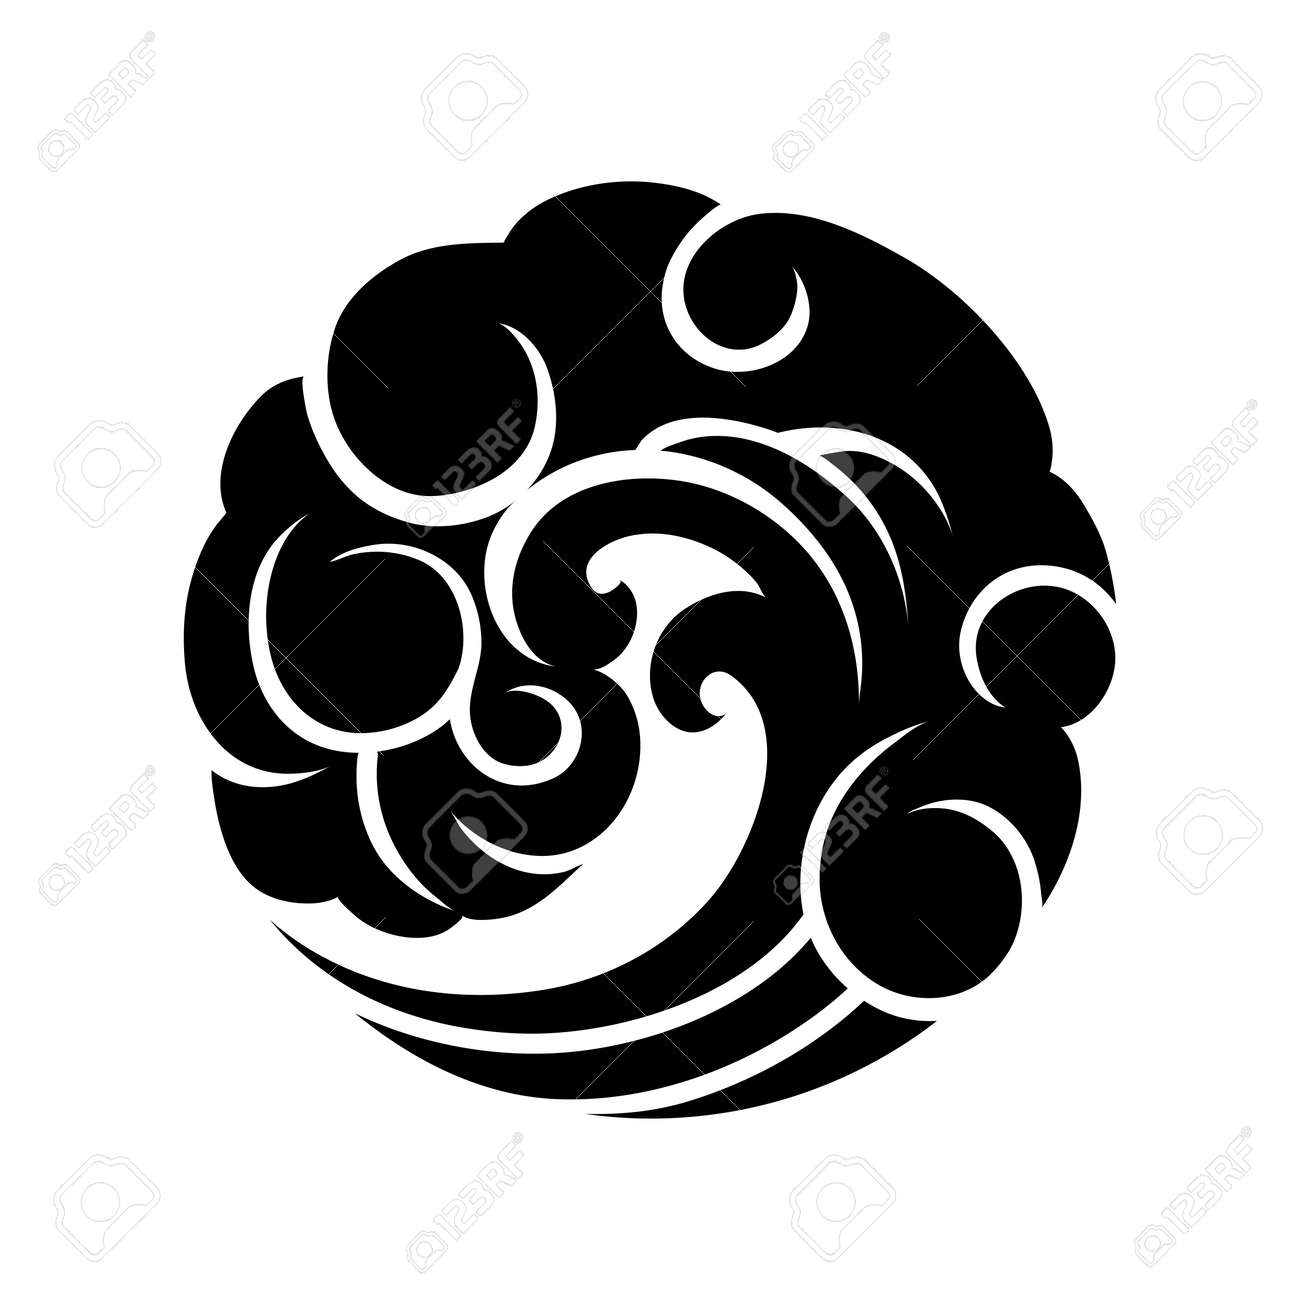 435 tide print cliparts stock vector and royalty free tide print abstract graphic wave in the shape of circle blackwork tattoo art or t shirt biocorpaavc